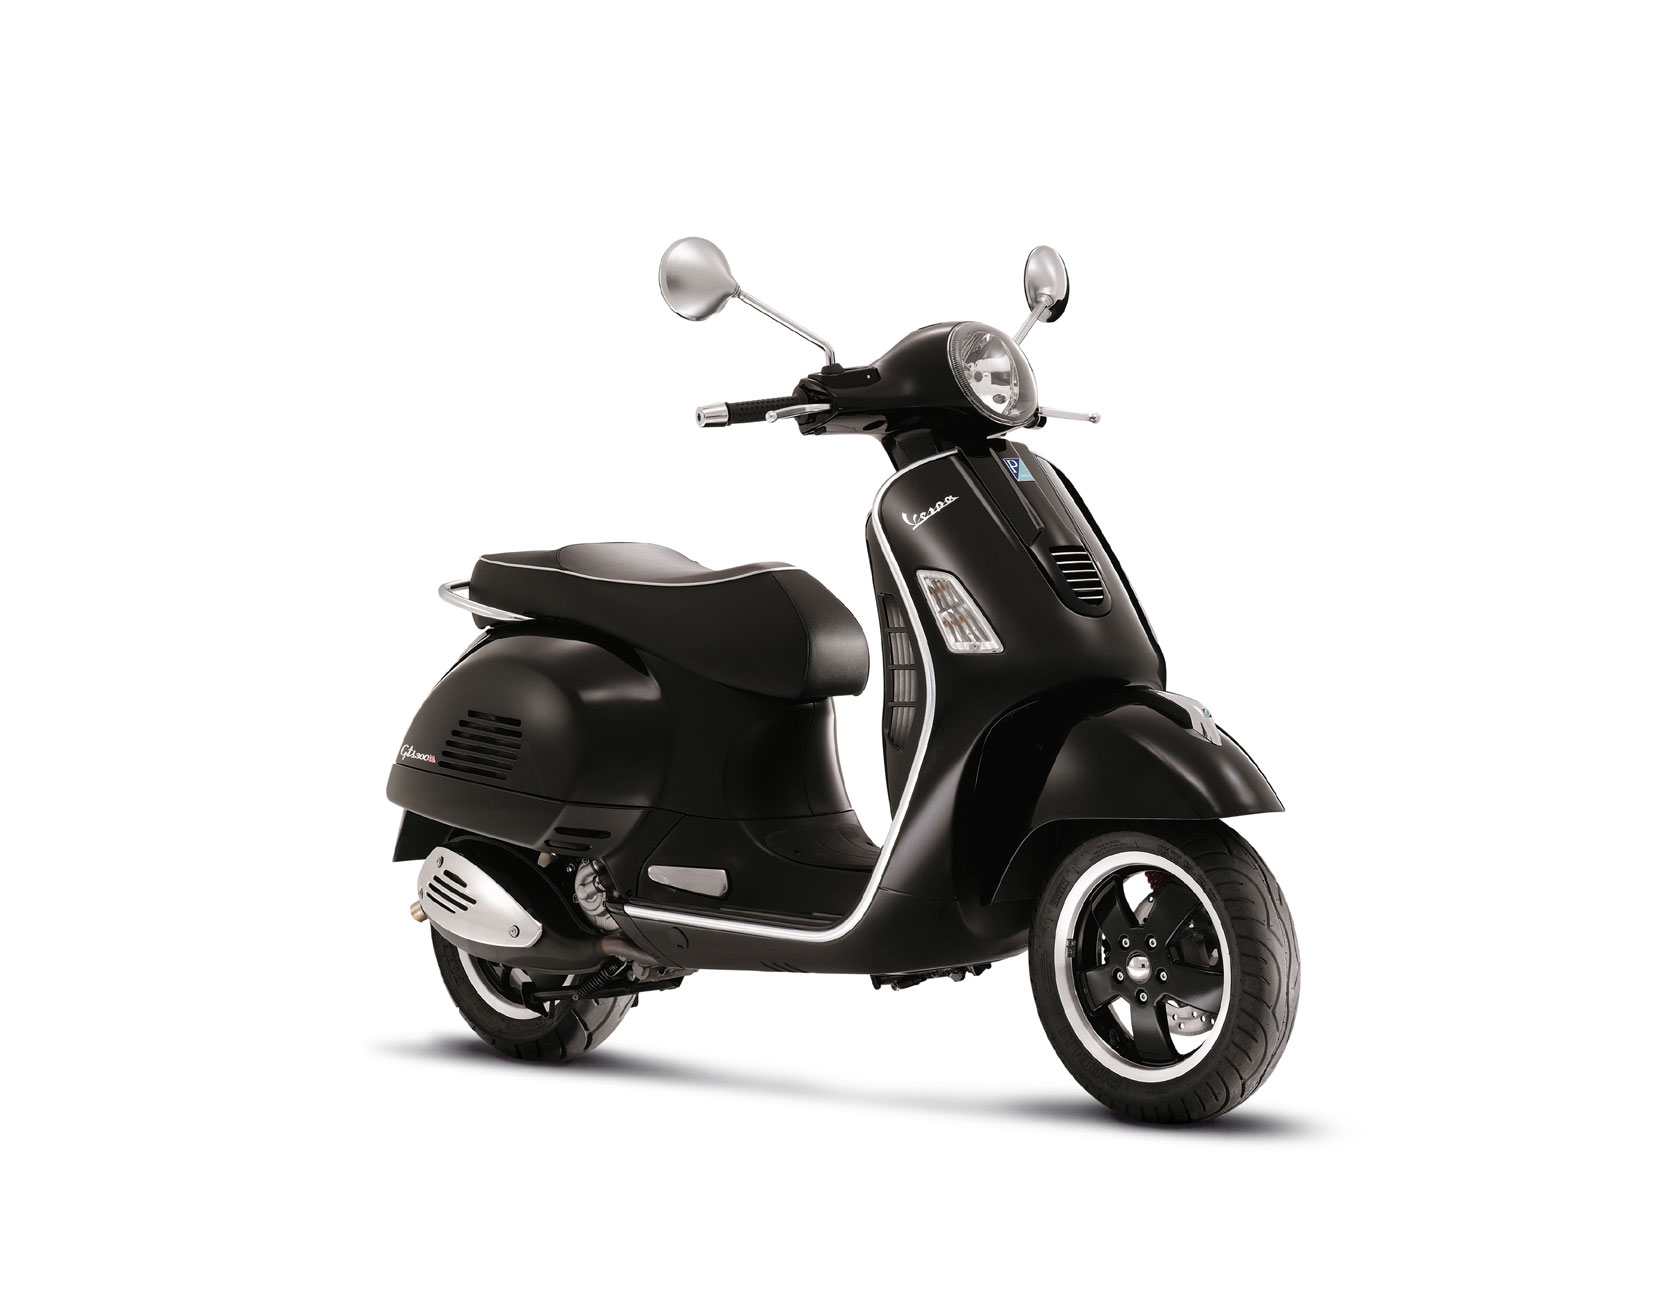 vespa gts 300 super 2008 2009 autoevolution. Black Bedroom Furniture Sets. Home Design Ideas